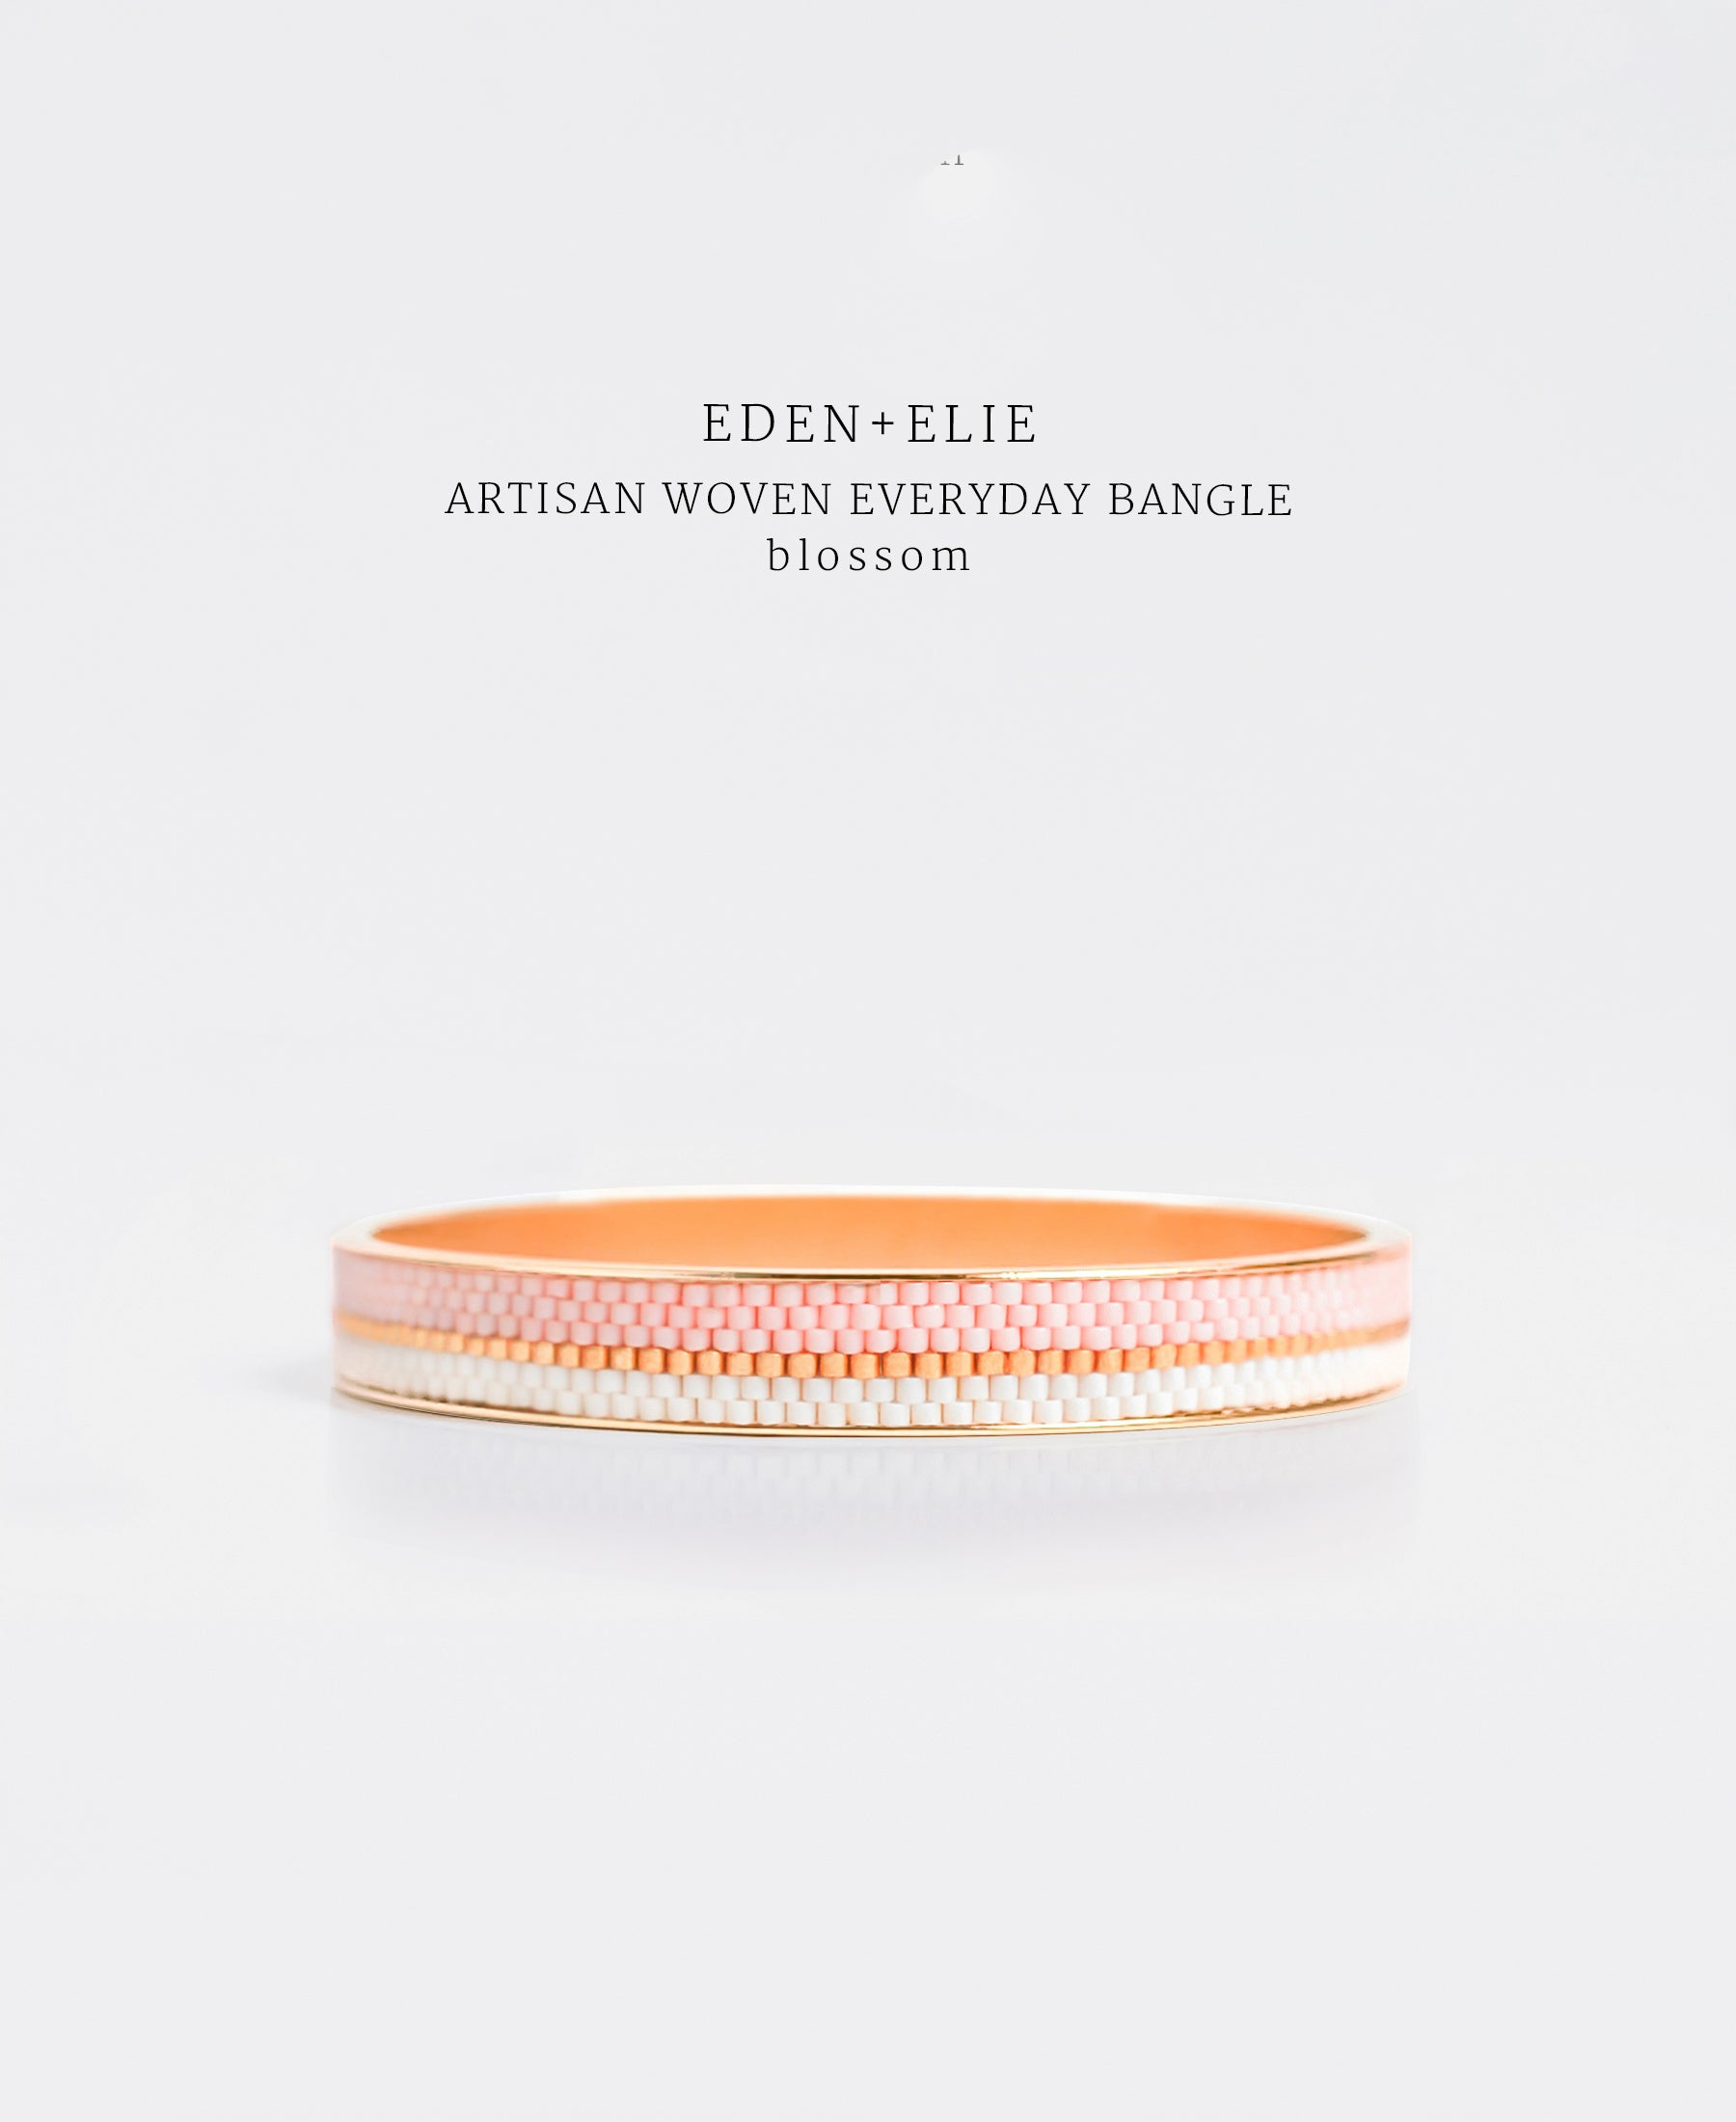 EDEN + ELIE Everyday gold narrow bangle - blossom pink